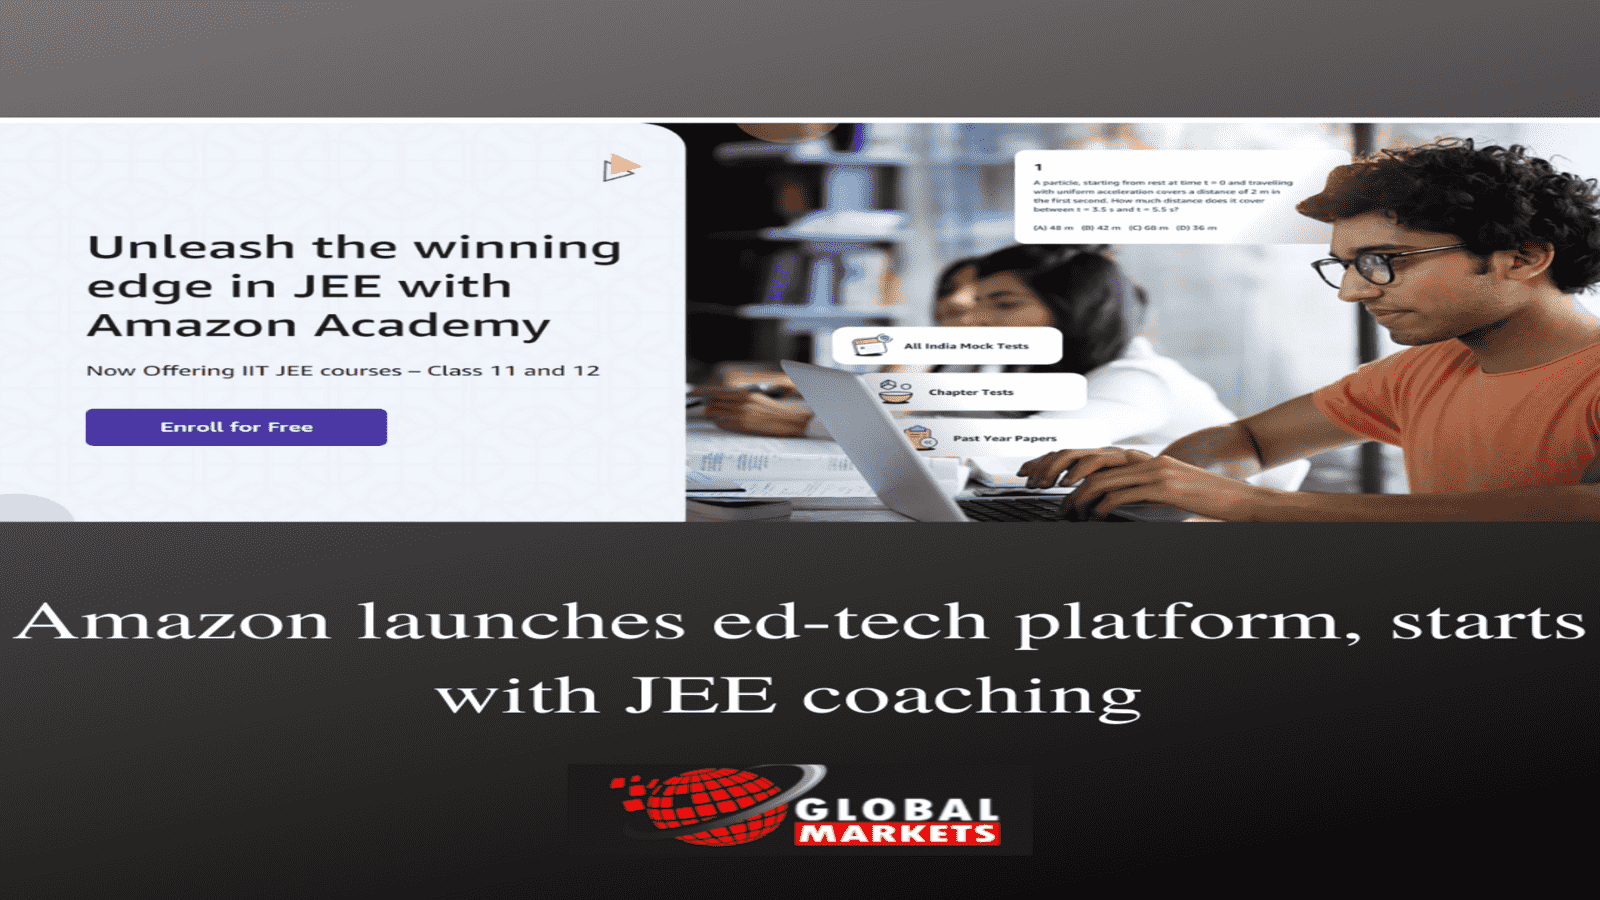 Amazon launches ed-tech platform, begins with JEE coaching